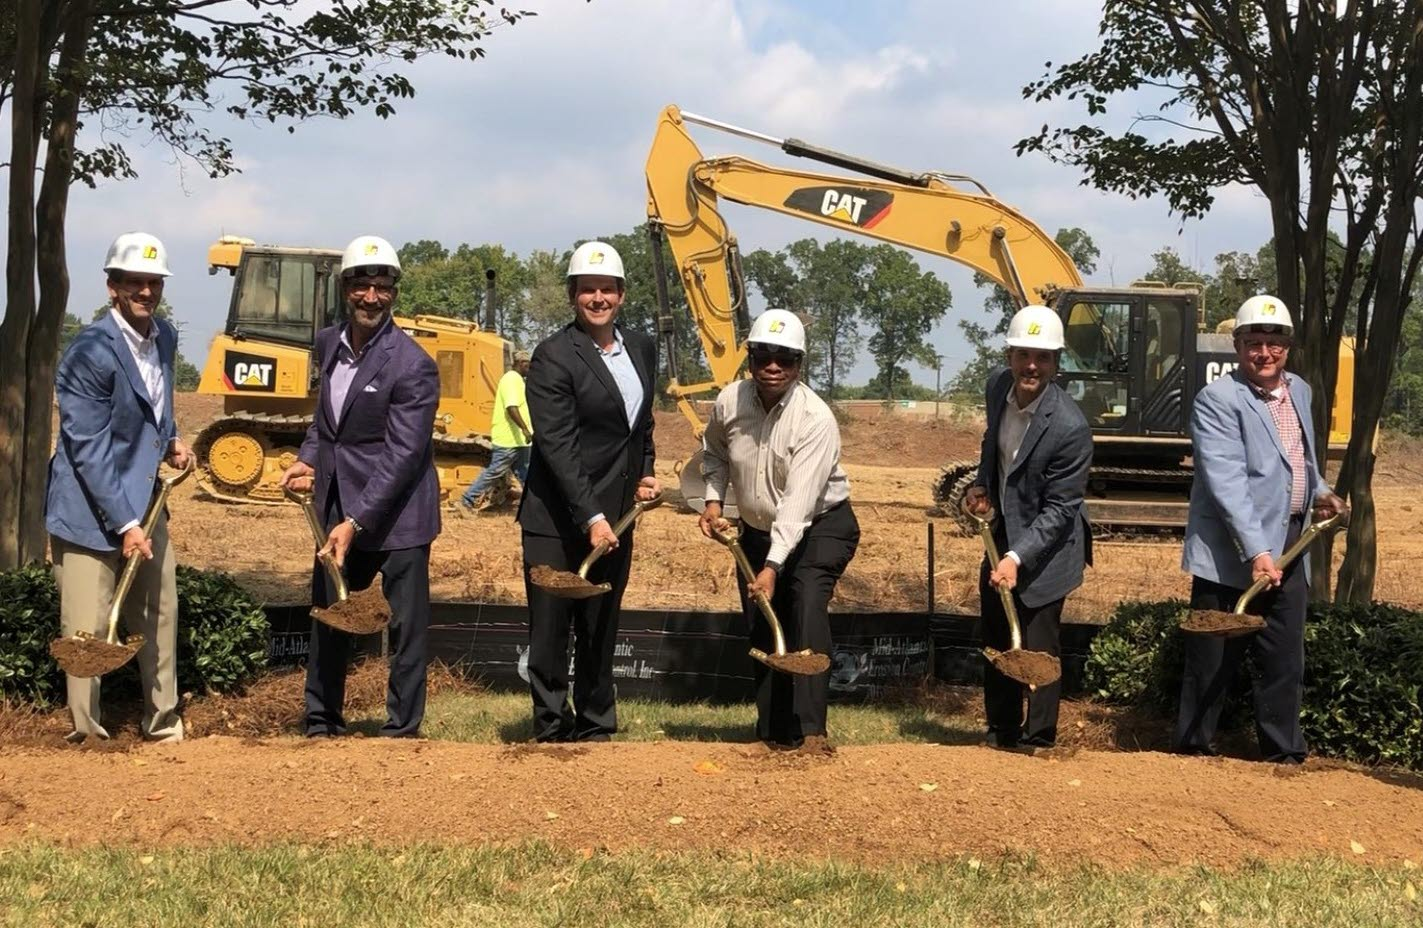 High companies and High Real Estate Group LLC executives join government and bank officials to break ground on Mallard Pointe Apartments, a new luxury-lifestyle community in Charlotte, N.C.